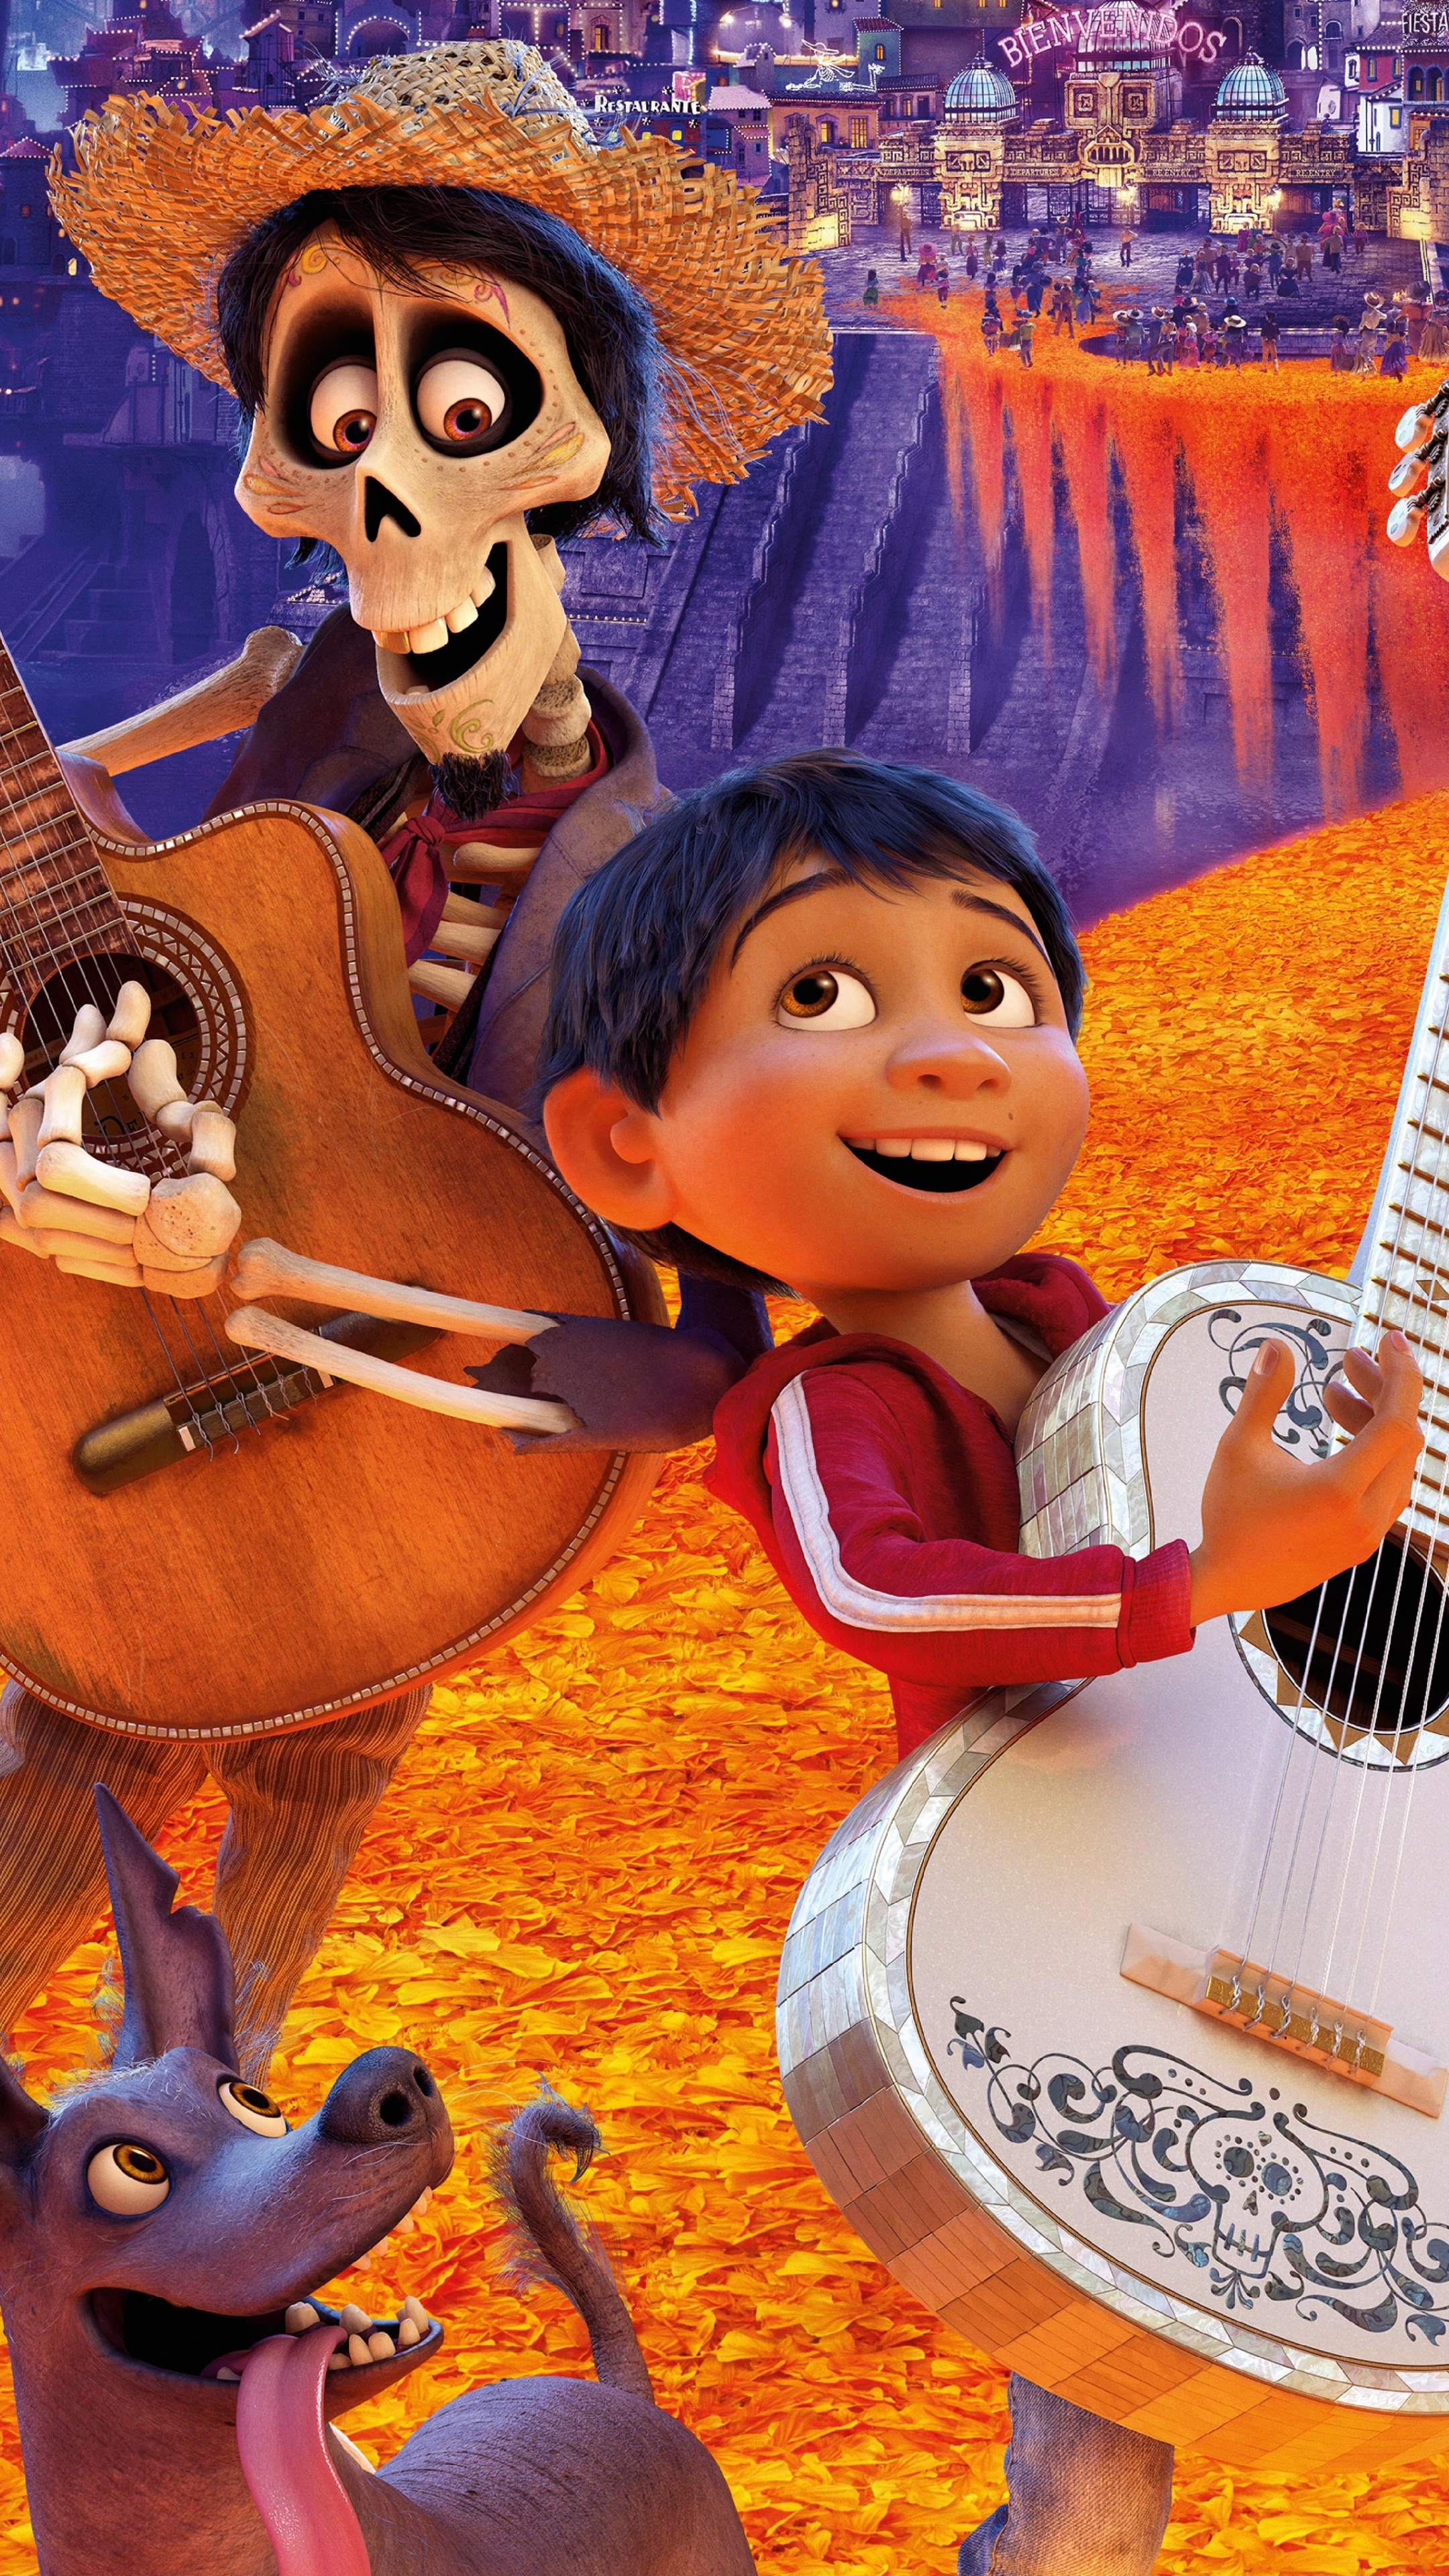 Download 2160x3840 Wallpaper Coco Animation Movie Dance Ghost 2017 4 Sony Xperia Z5 Premium Dual Hd Image Background 290